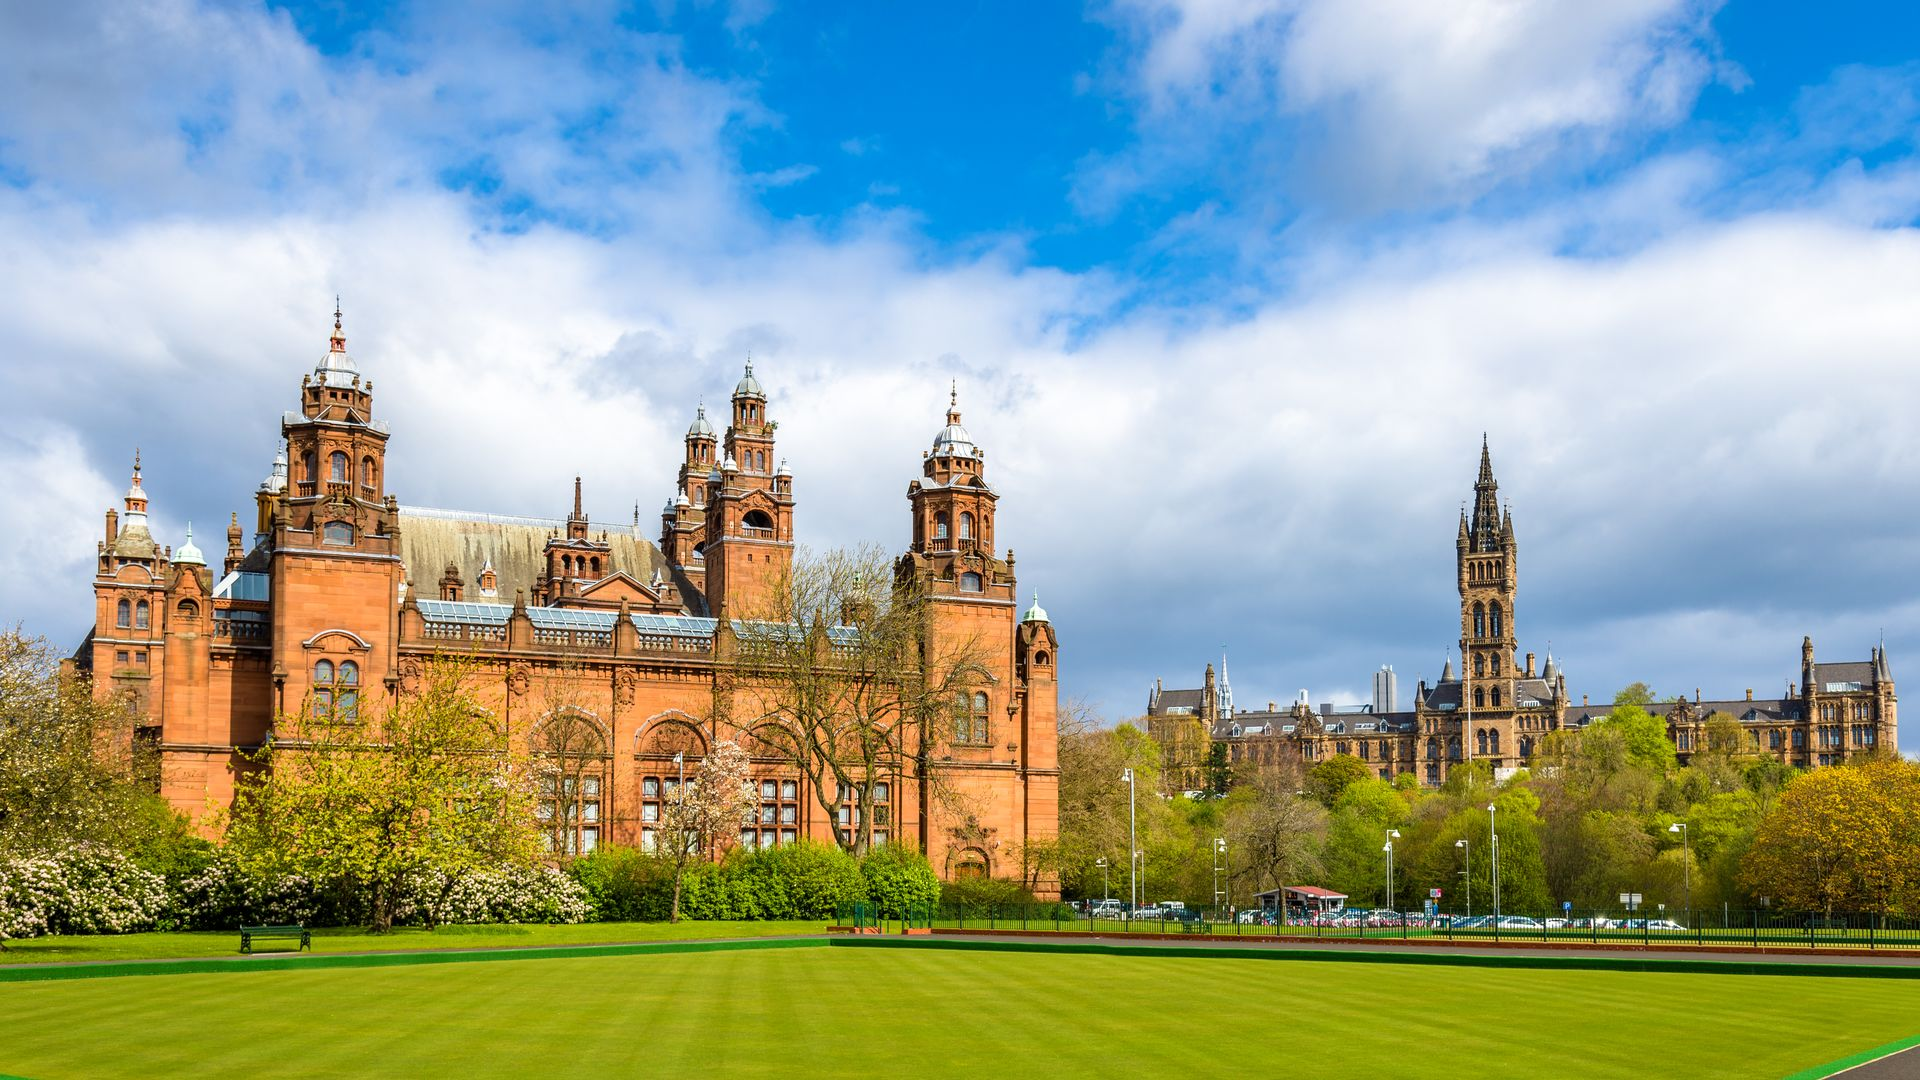 Kelvingrove and Glasgow University